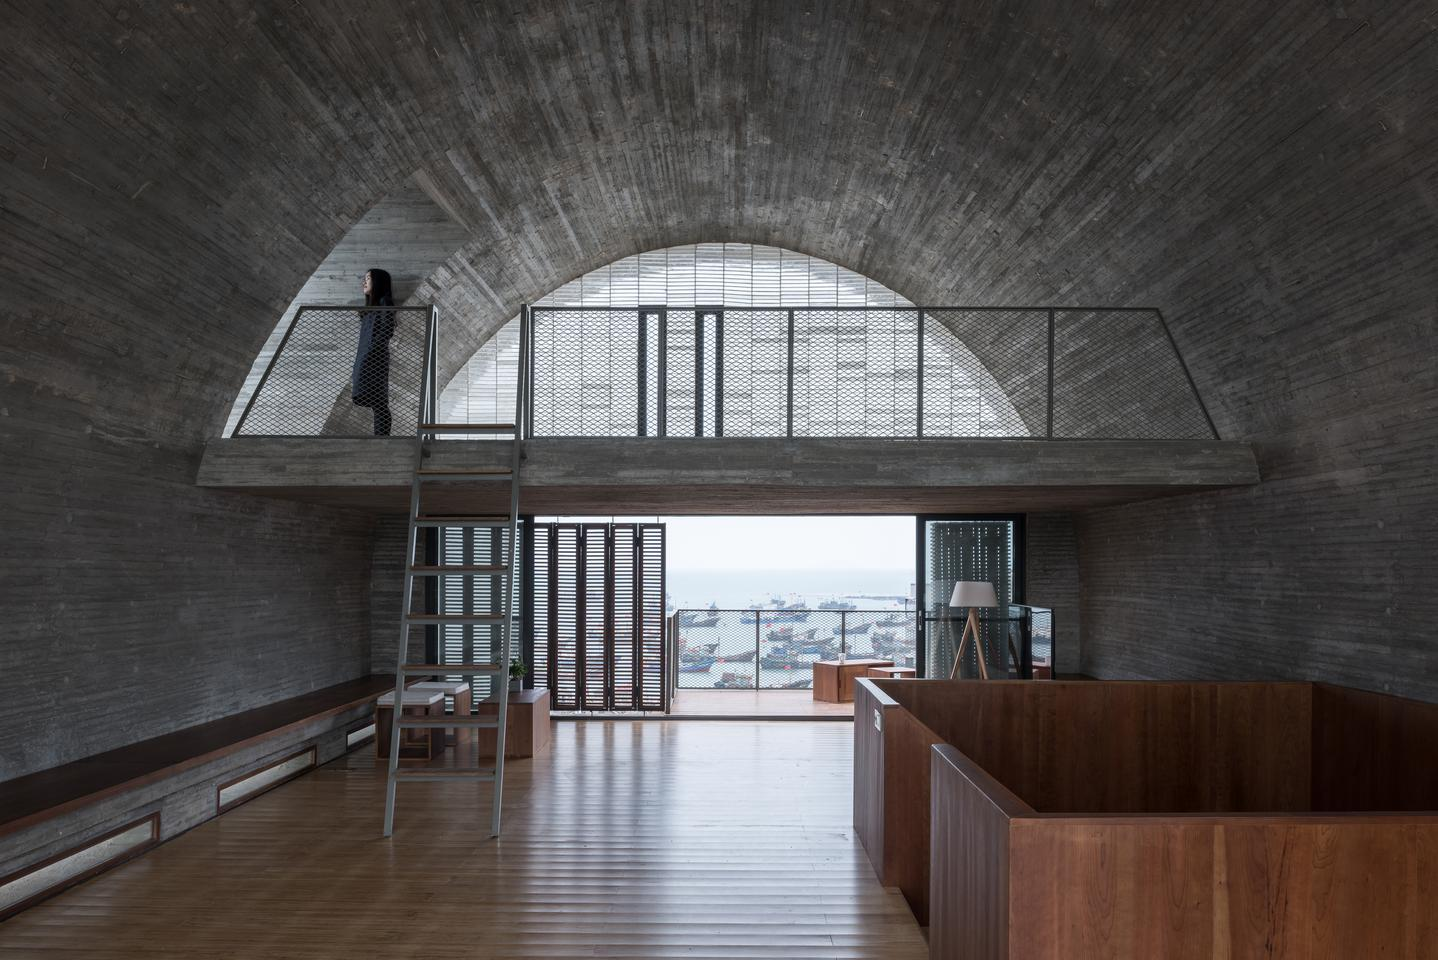 Renovation of the Captain's House was designed by Vector Architects and is located in China. The project involved the refurbishment and extension of an existing ship's captain's house poised on the water's edge overlooking the East China Sea. It's defined by a distinctive barrel-vaulted roof